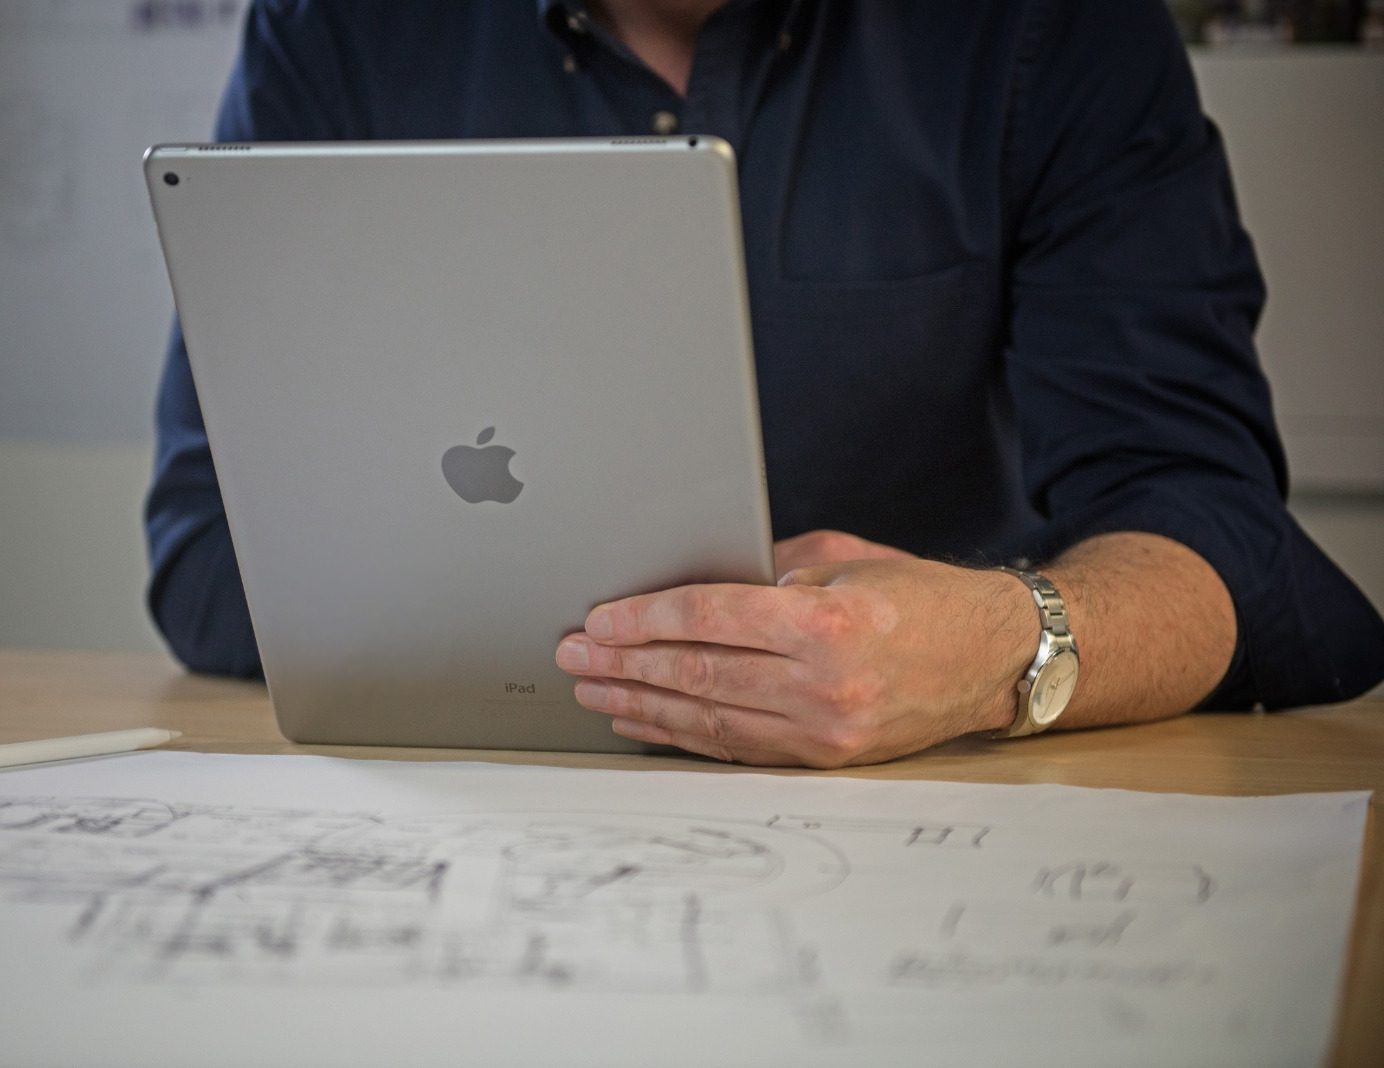 Manchester tech firm Sync launches 'Back to School' bundle deals on Apple products for university students, The Manc